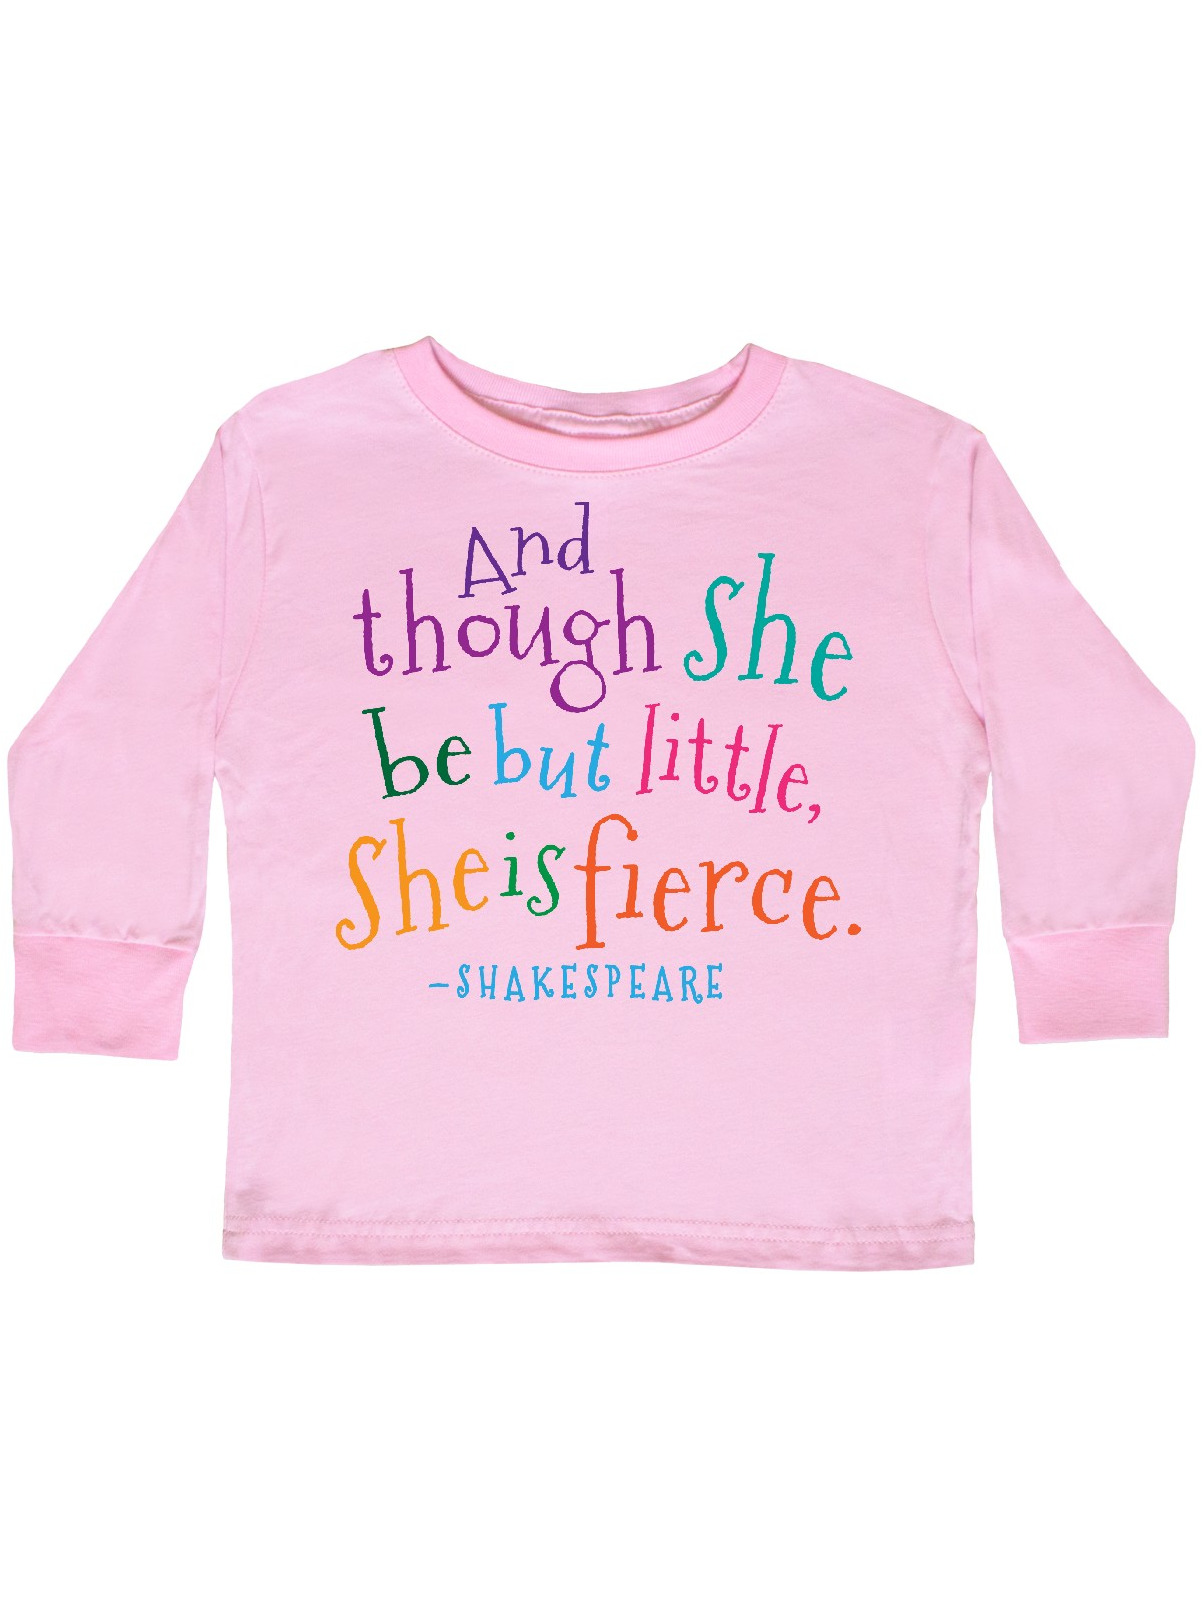 3fae48ddb3 Inktastic - Funny Shakespeare Quote Toddler Long Sleeve T-Shirt -  Walmart.com